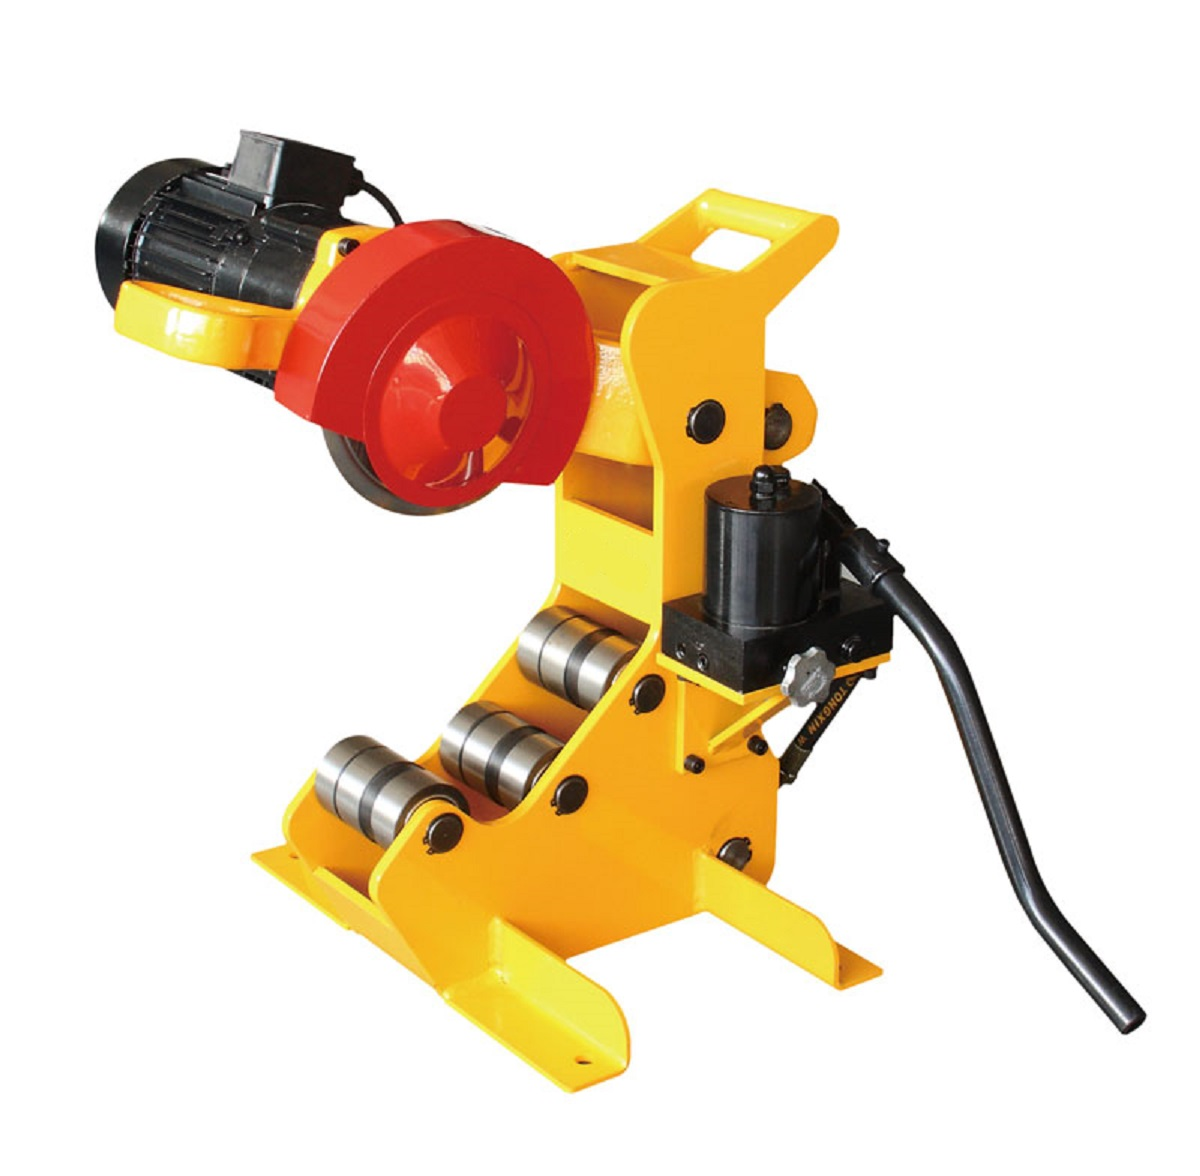 Solwet Pipe Cutter 8